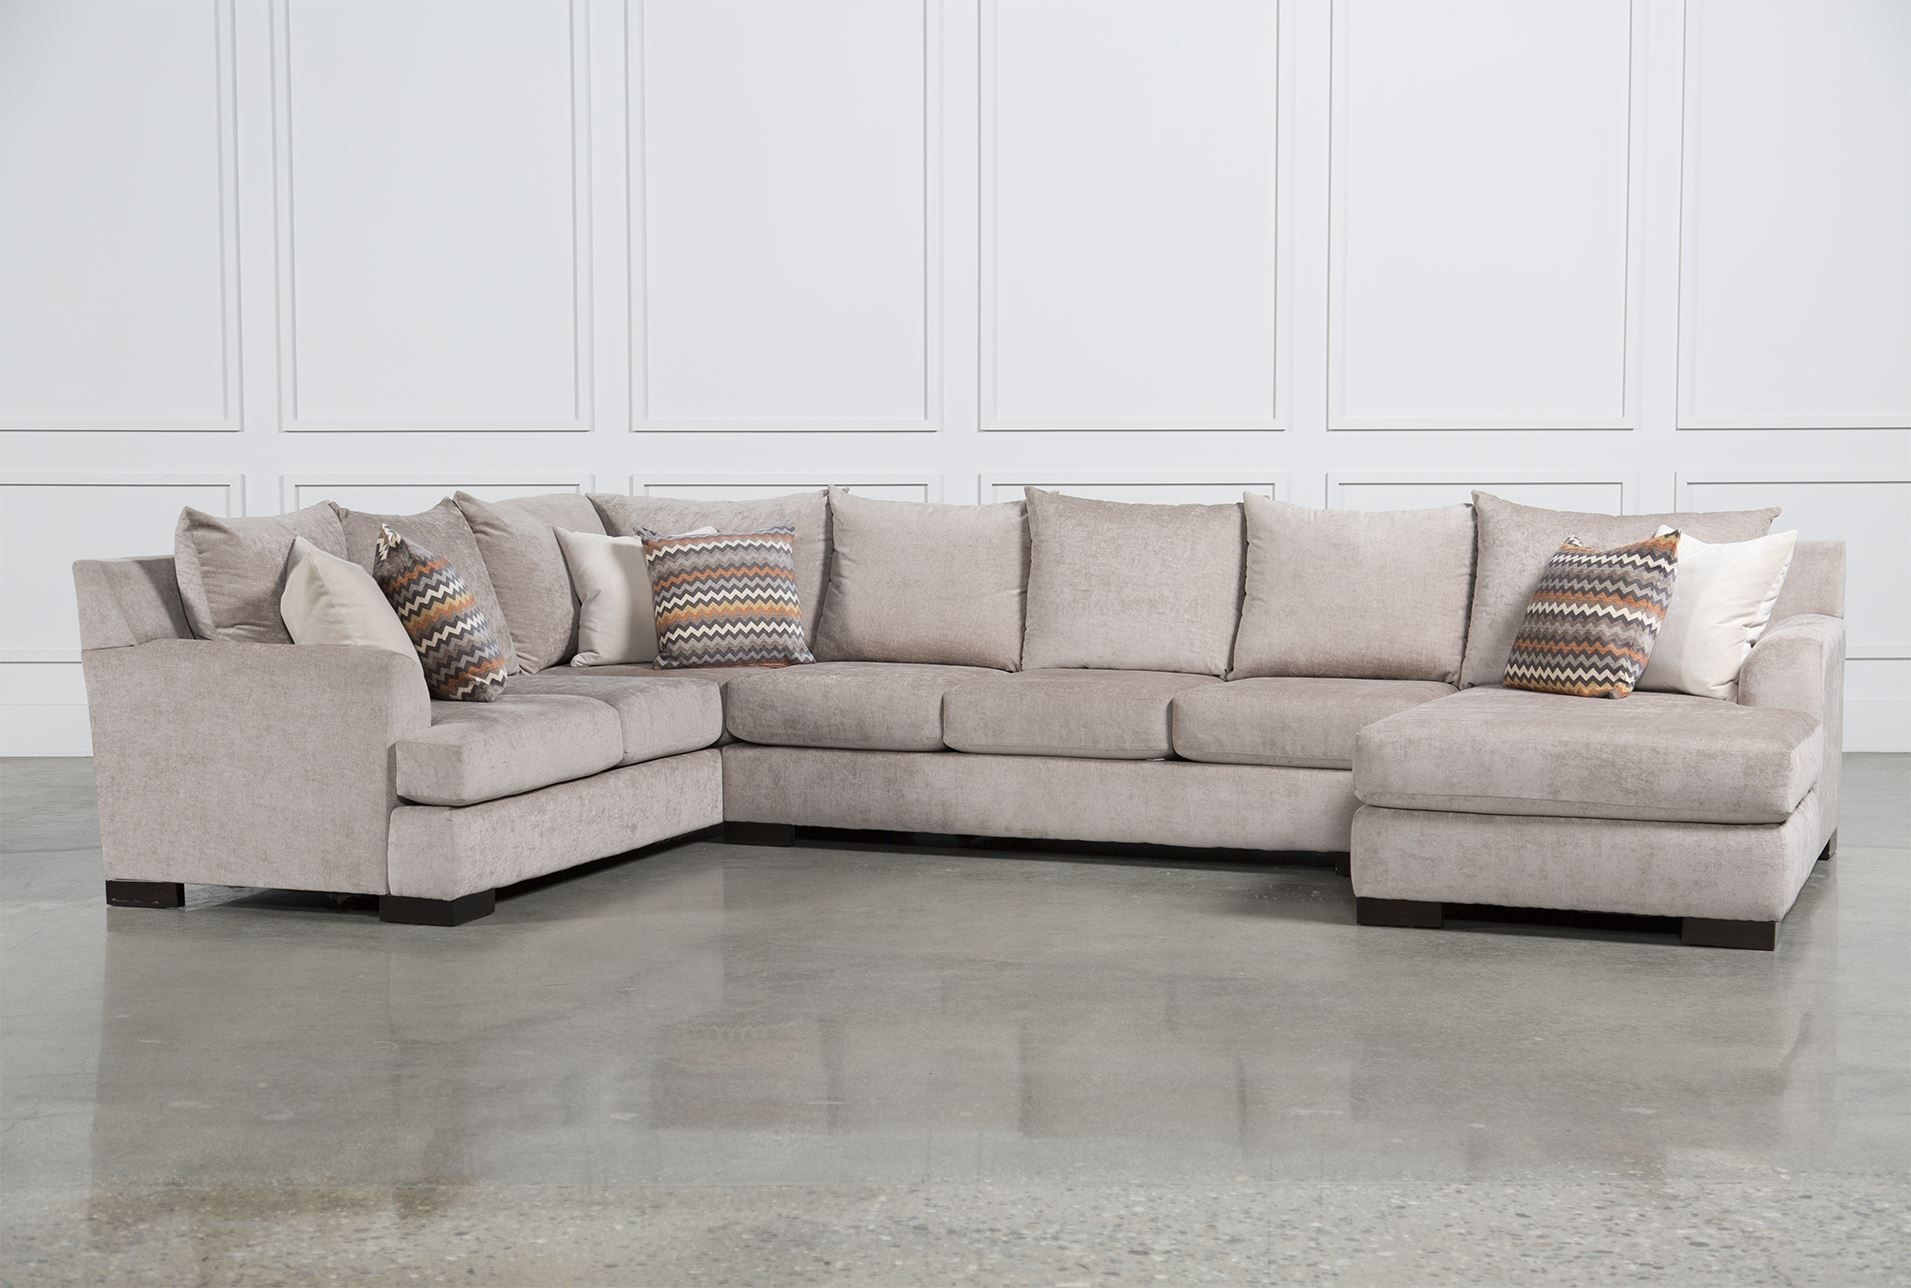 Living Space Sectional Sofa – Sofa Design Ideas Regarding Aquarius Light Grey 2 Piece Sectionals With Laf Chaise (View 22 of 30)